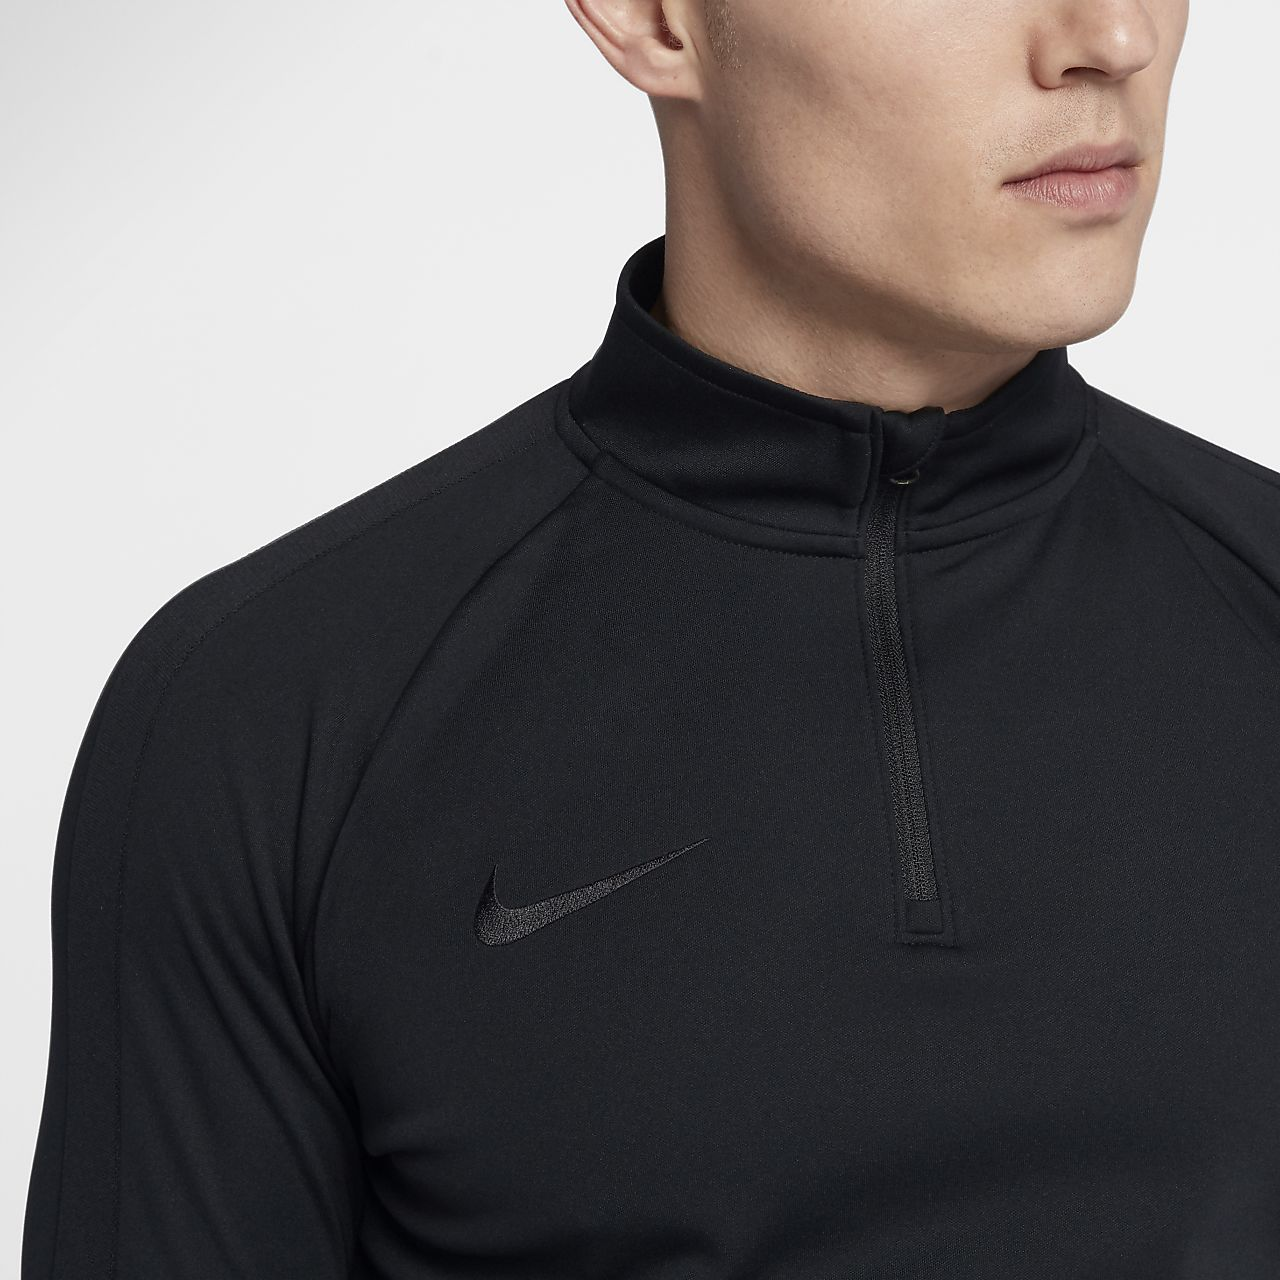 dede0e27 Nike Dri-FIT Academy Men's 1/4 Zip Football Drill Top. Nike.com AU